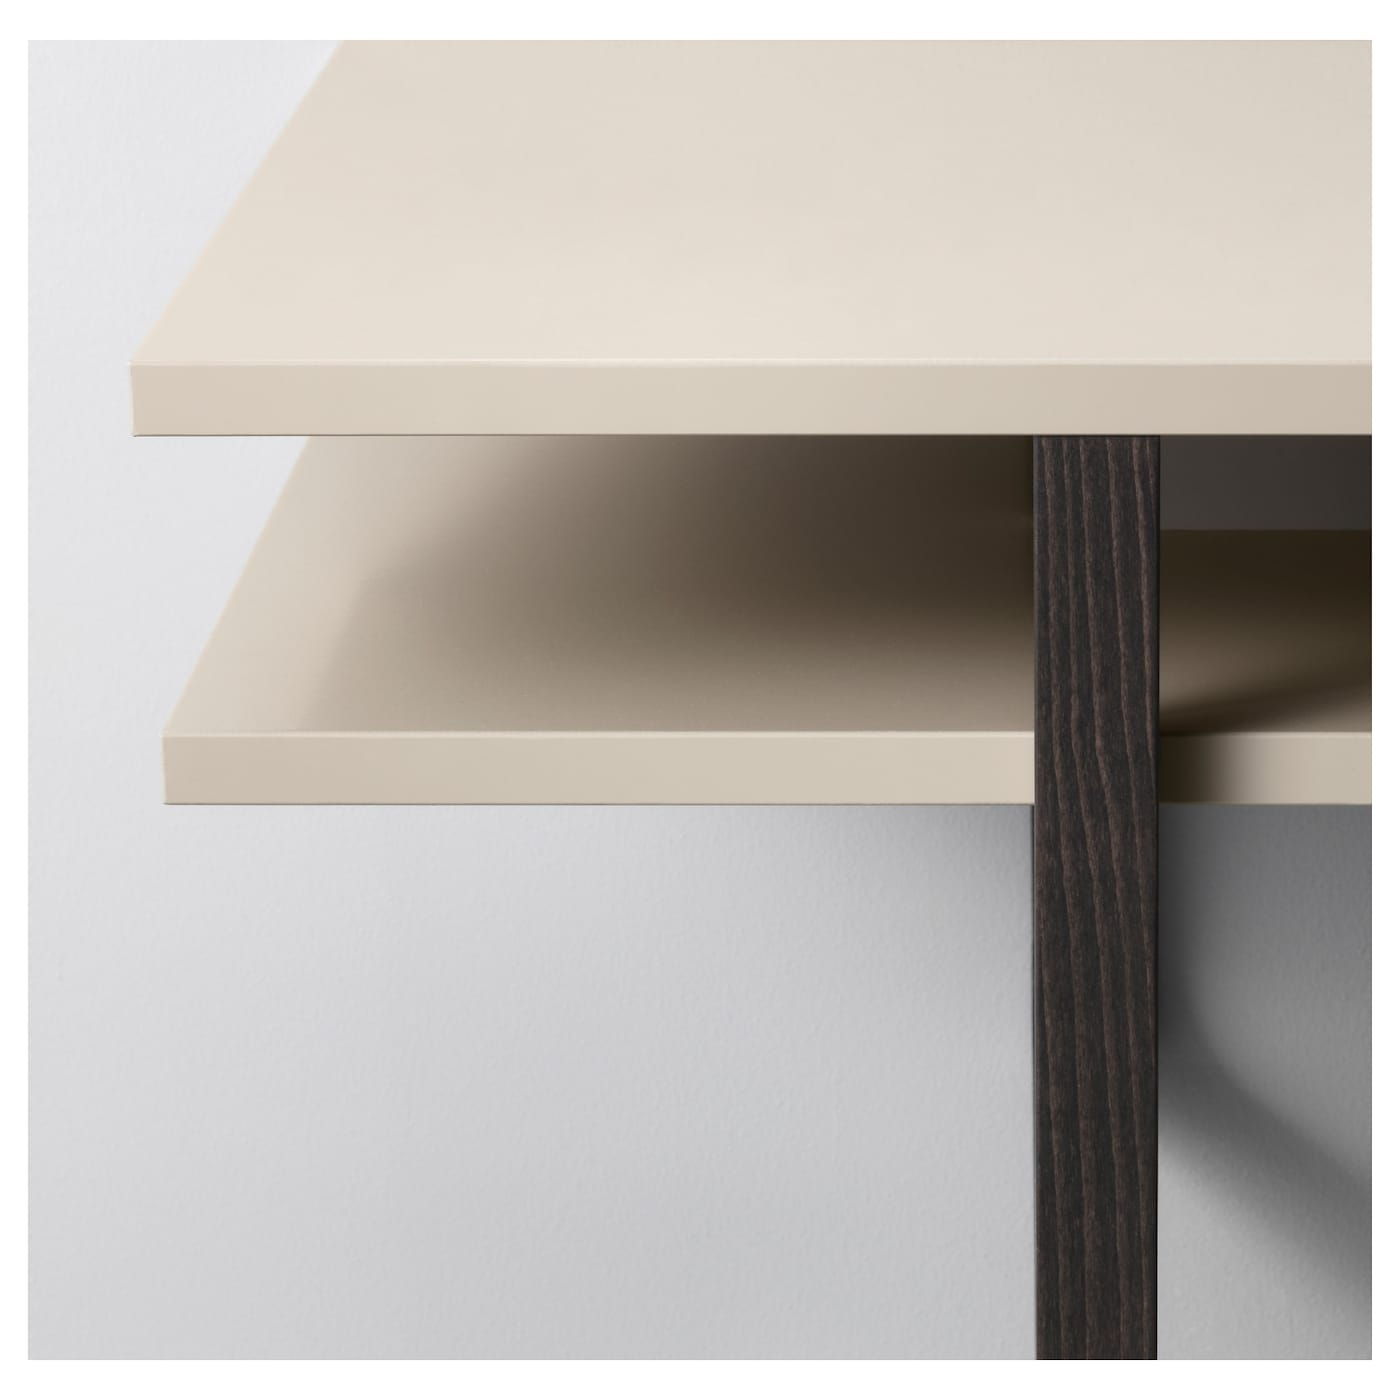 RISSNA Coffee table Beige 160x55 cm IKEA